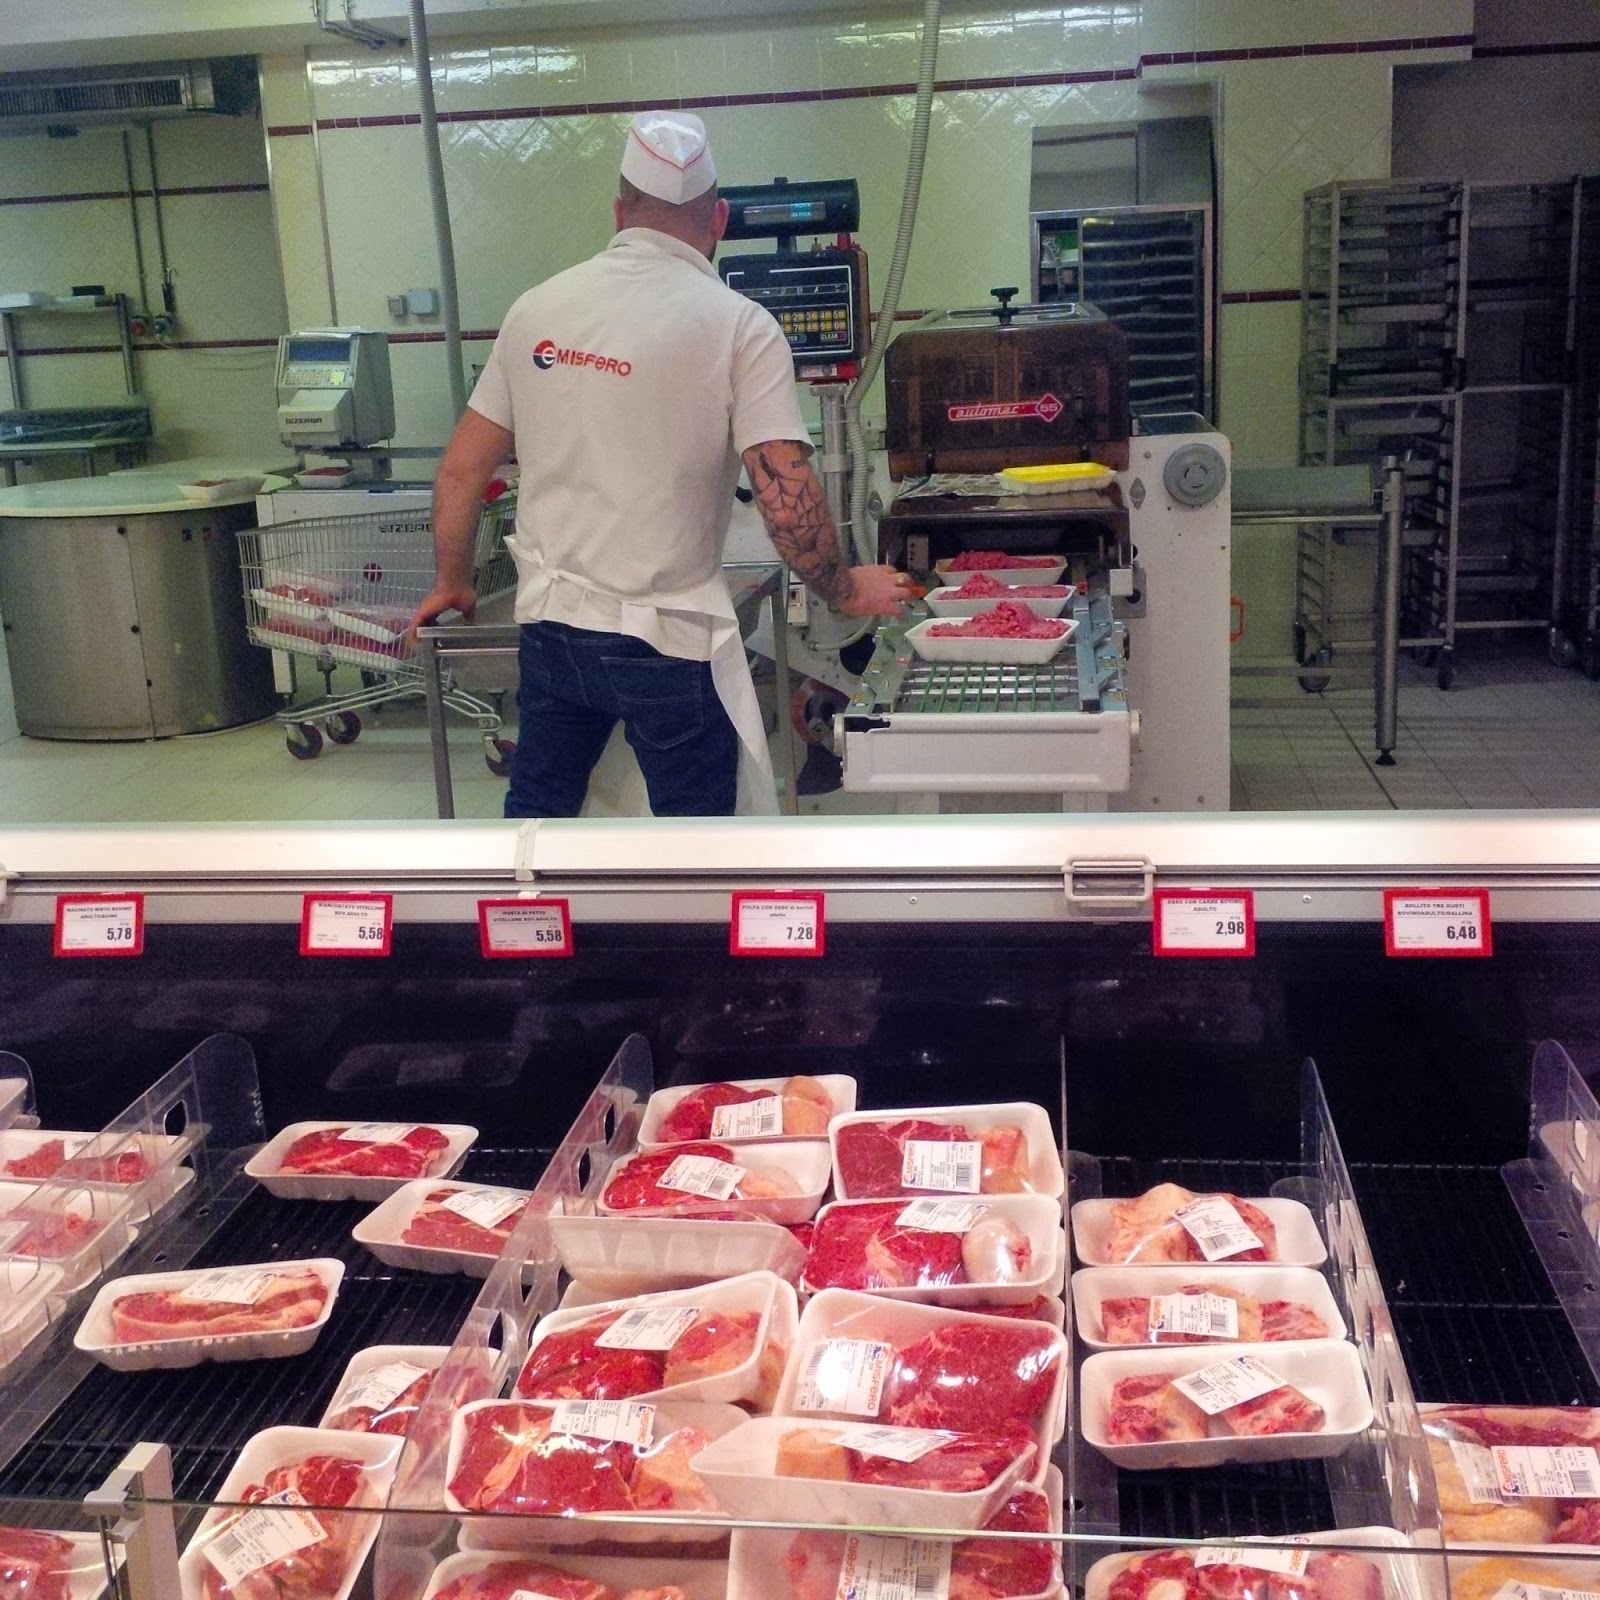 Observing a butcher at work packing large packs of mince meat